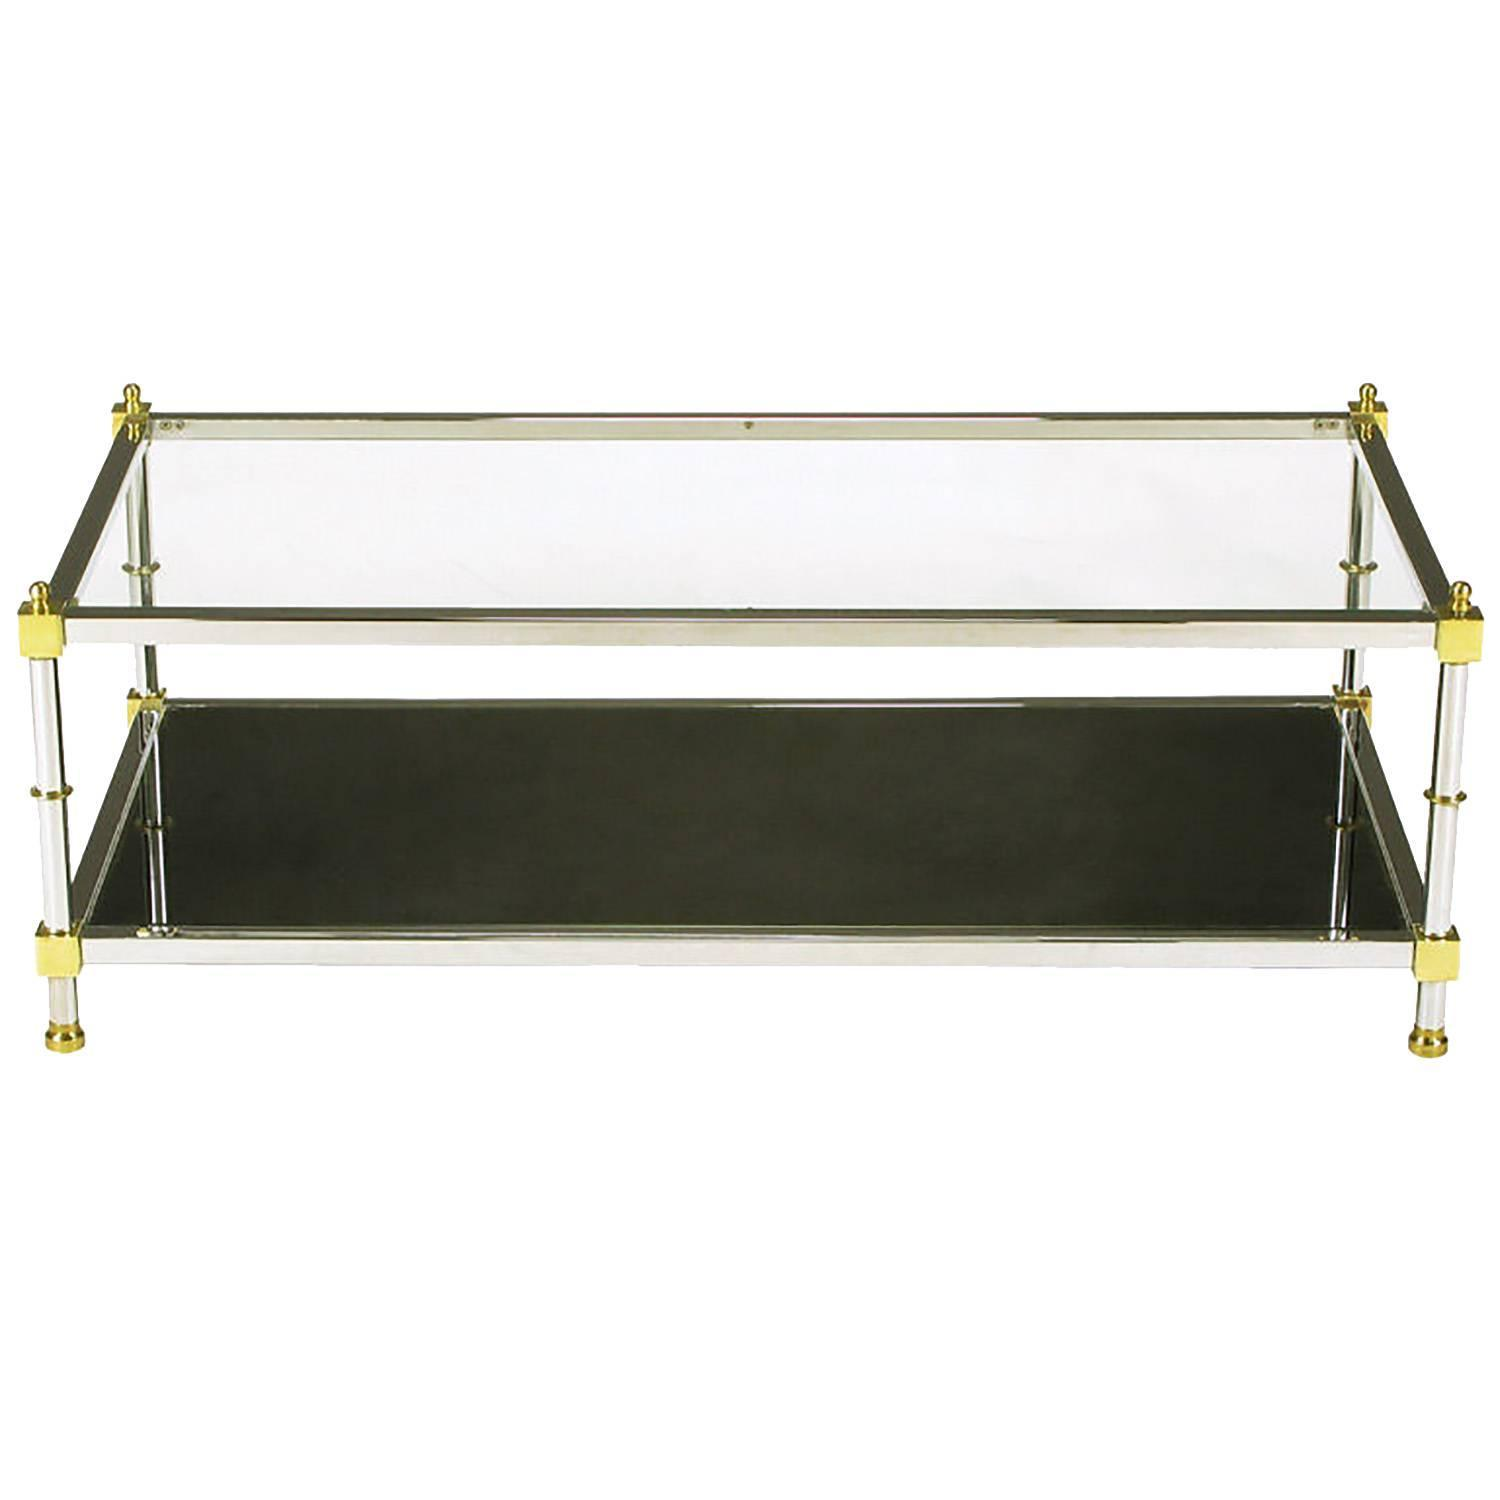 Mirrored Coffee Table Sale: Chrome And Brass Coffee Table With Mirrored And Clear